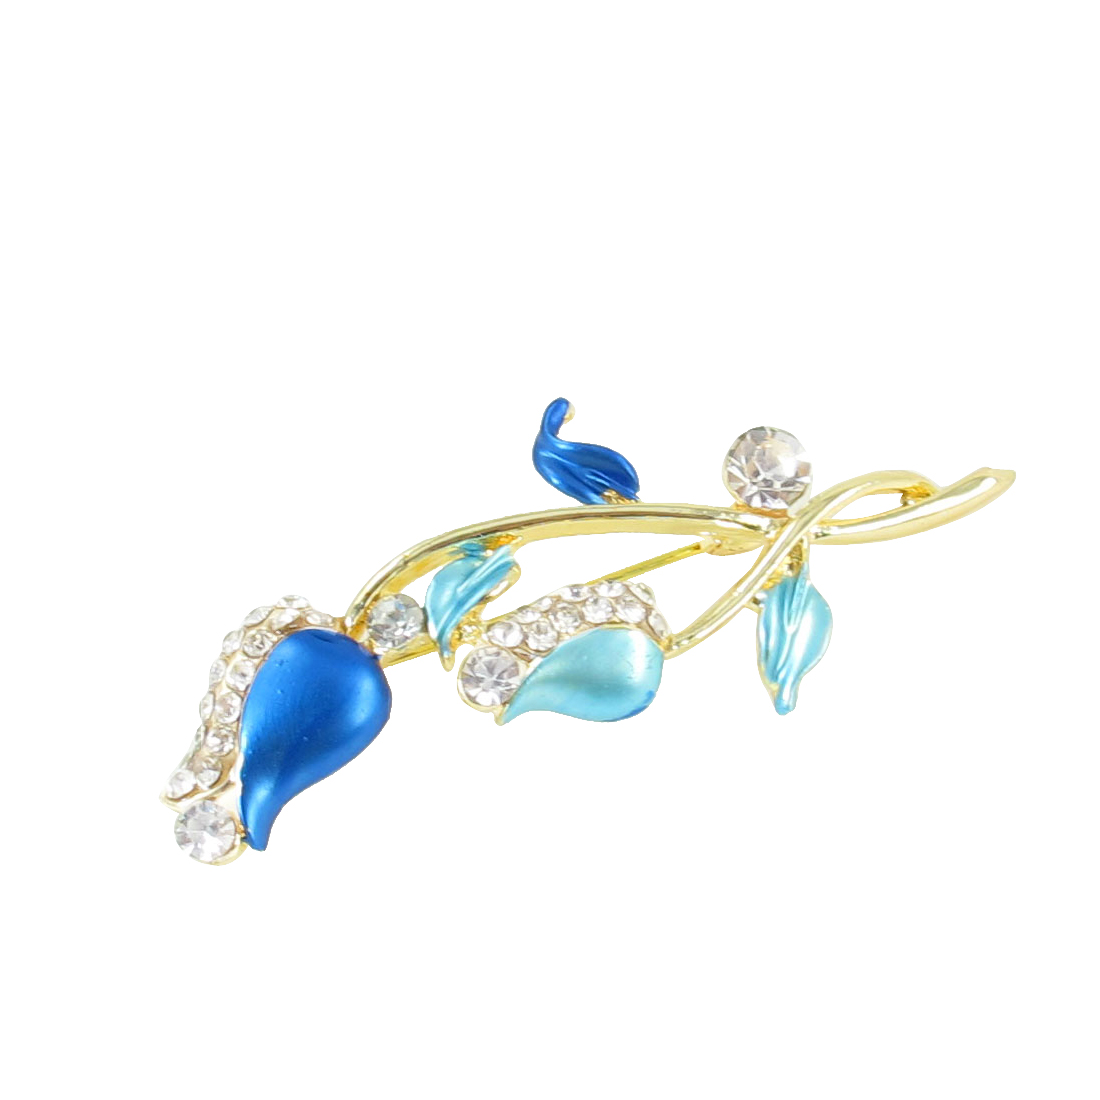 Lady Glittery Rhinestone Detail Baby Blue Floral Type Safety Pin Brooch Broach